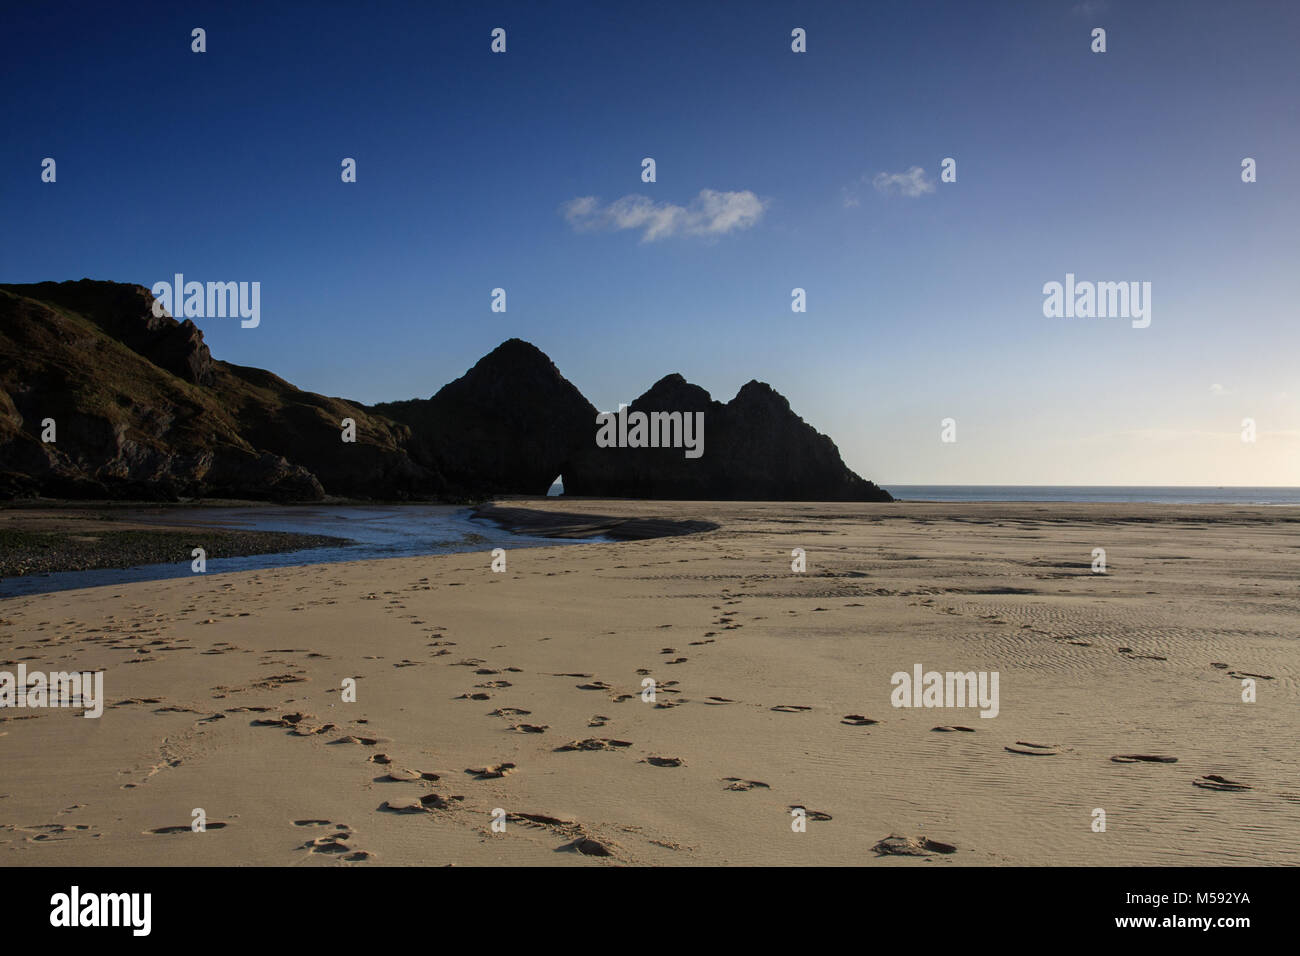 Footsteps on sand Three Cliffs Bay,Gower Peninsula, Swansea - Stock Image